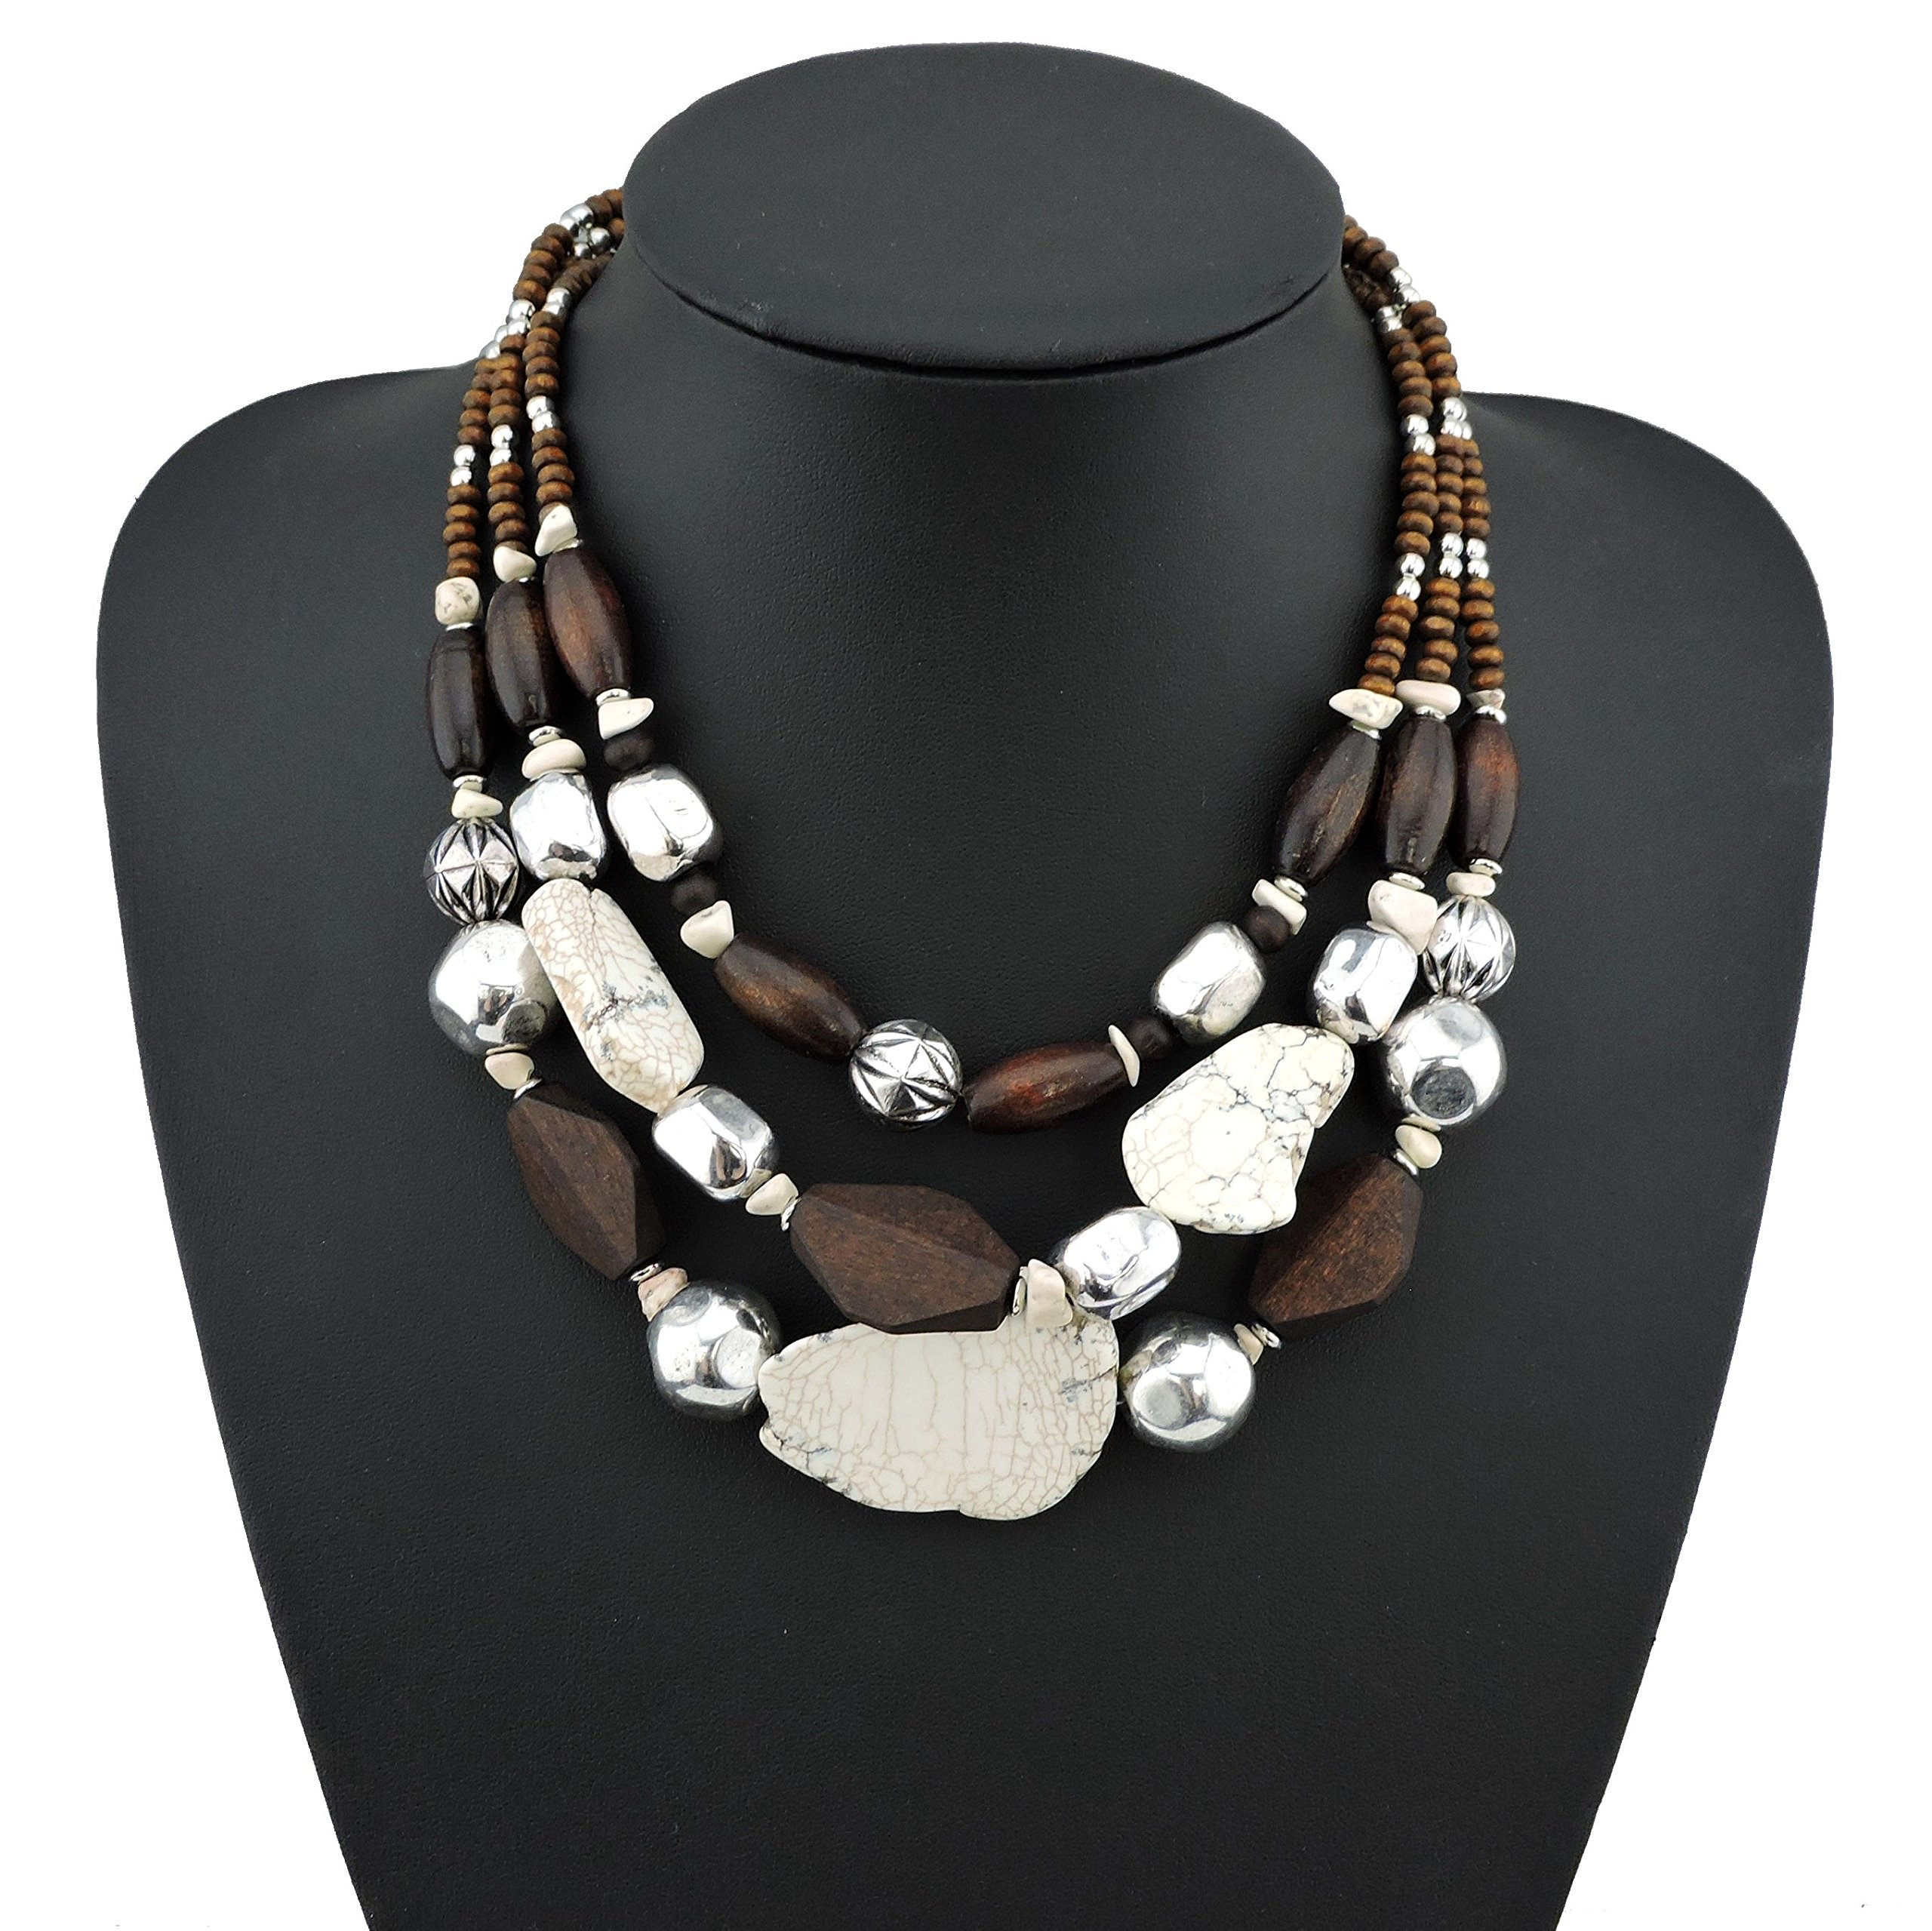 BOCAR Personalized Layered Strands Turquoise Statement Chunky Necklace for Women Gifts (NK-10124-white)